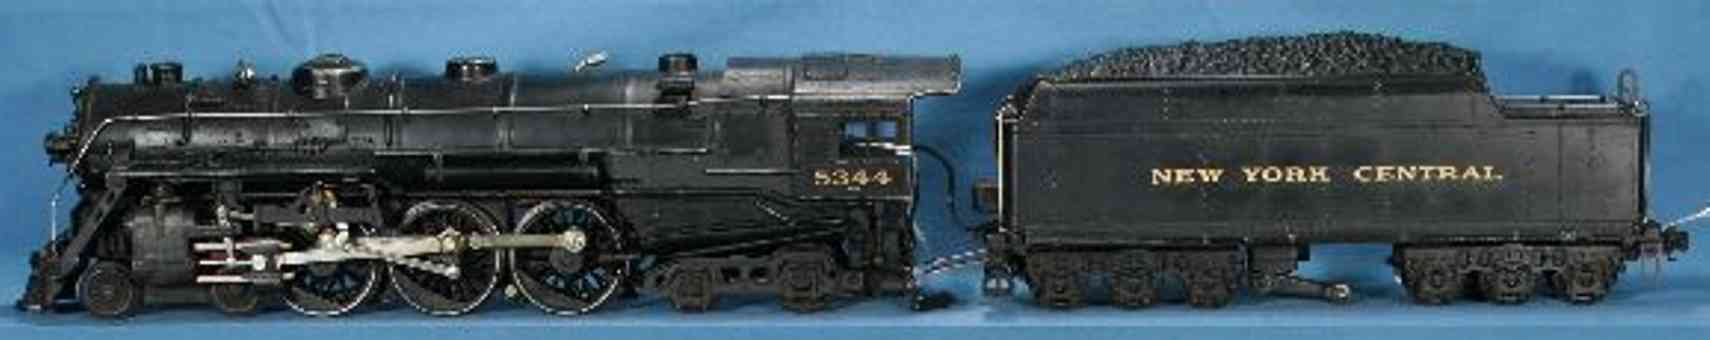 Lionel 700K Locomotive Scale Hudson with 700TW tender